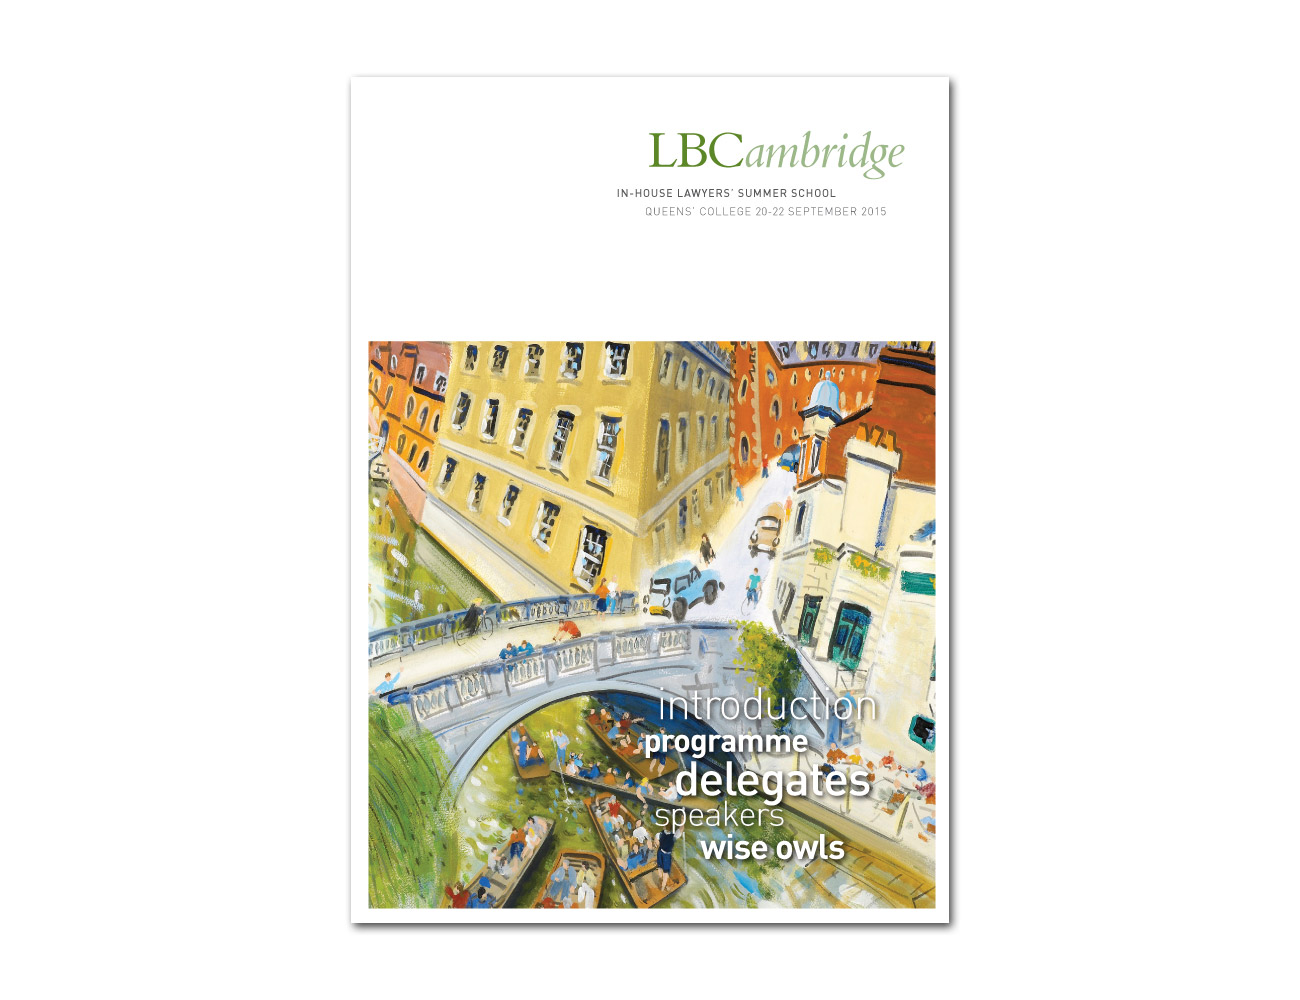 LBCambridge introduction booklet